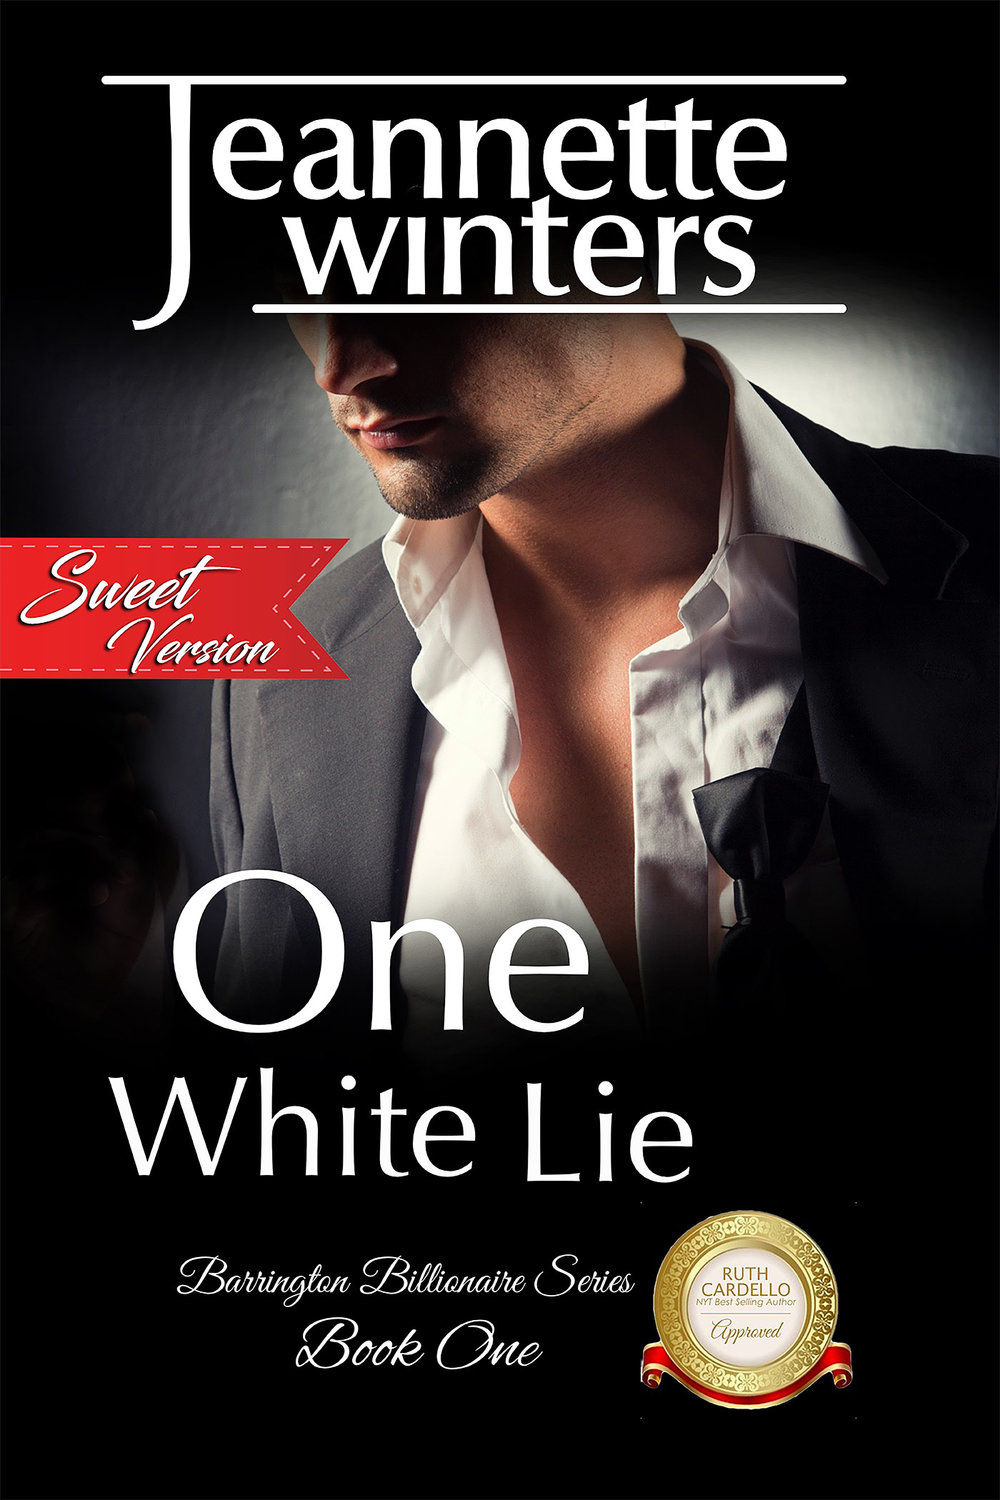 One White Lie Sweet Version.jpg